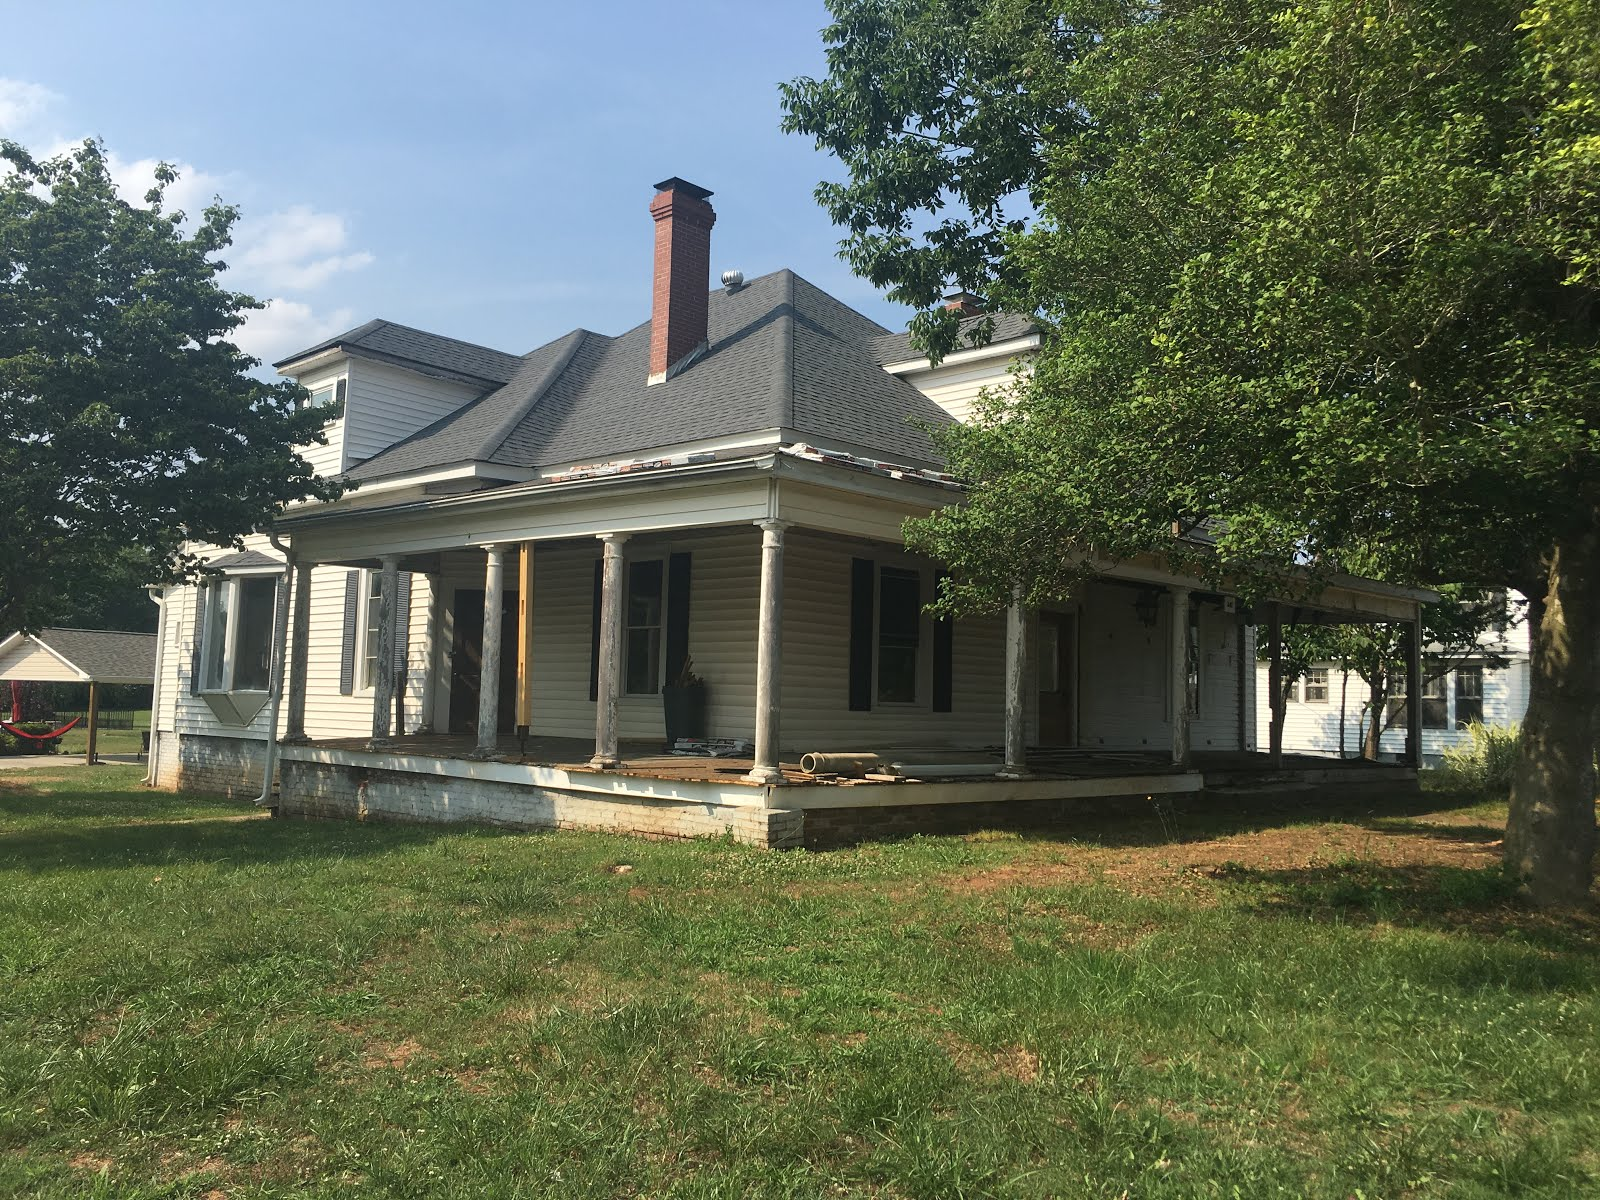 501 N. Main Street, China Grove NC 28023 ~ circa 1914 ~ $79,900